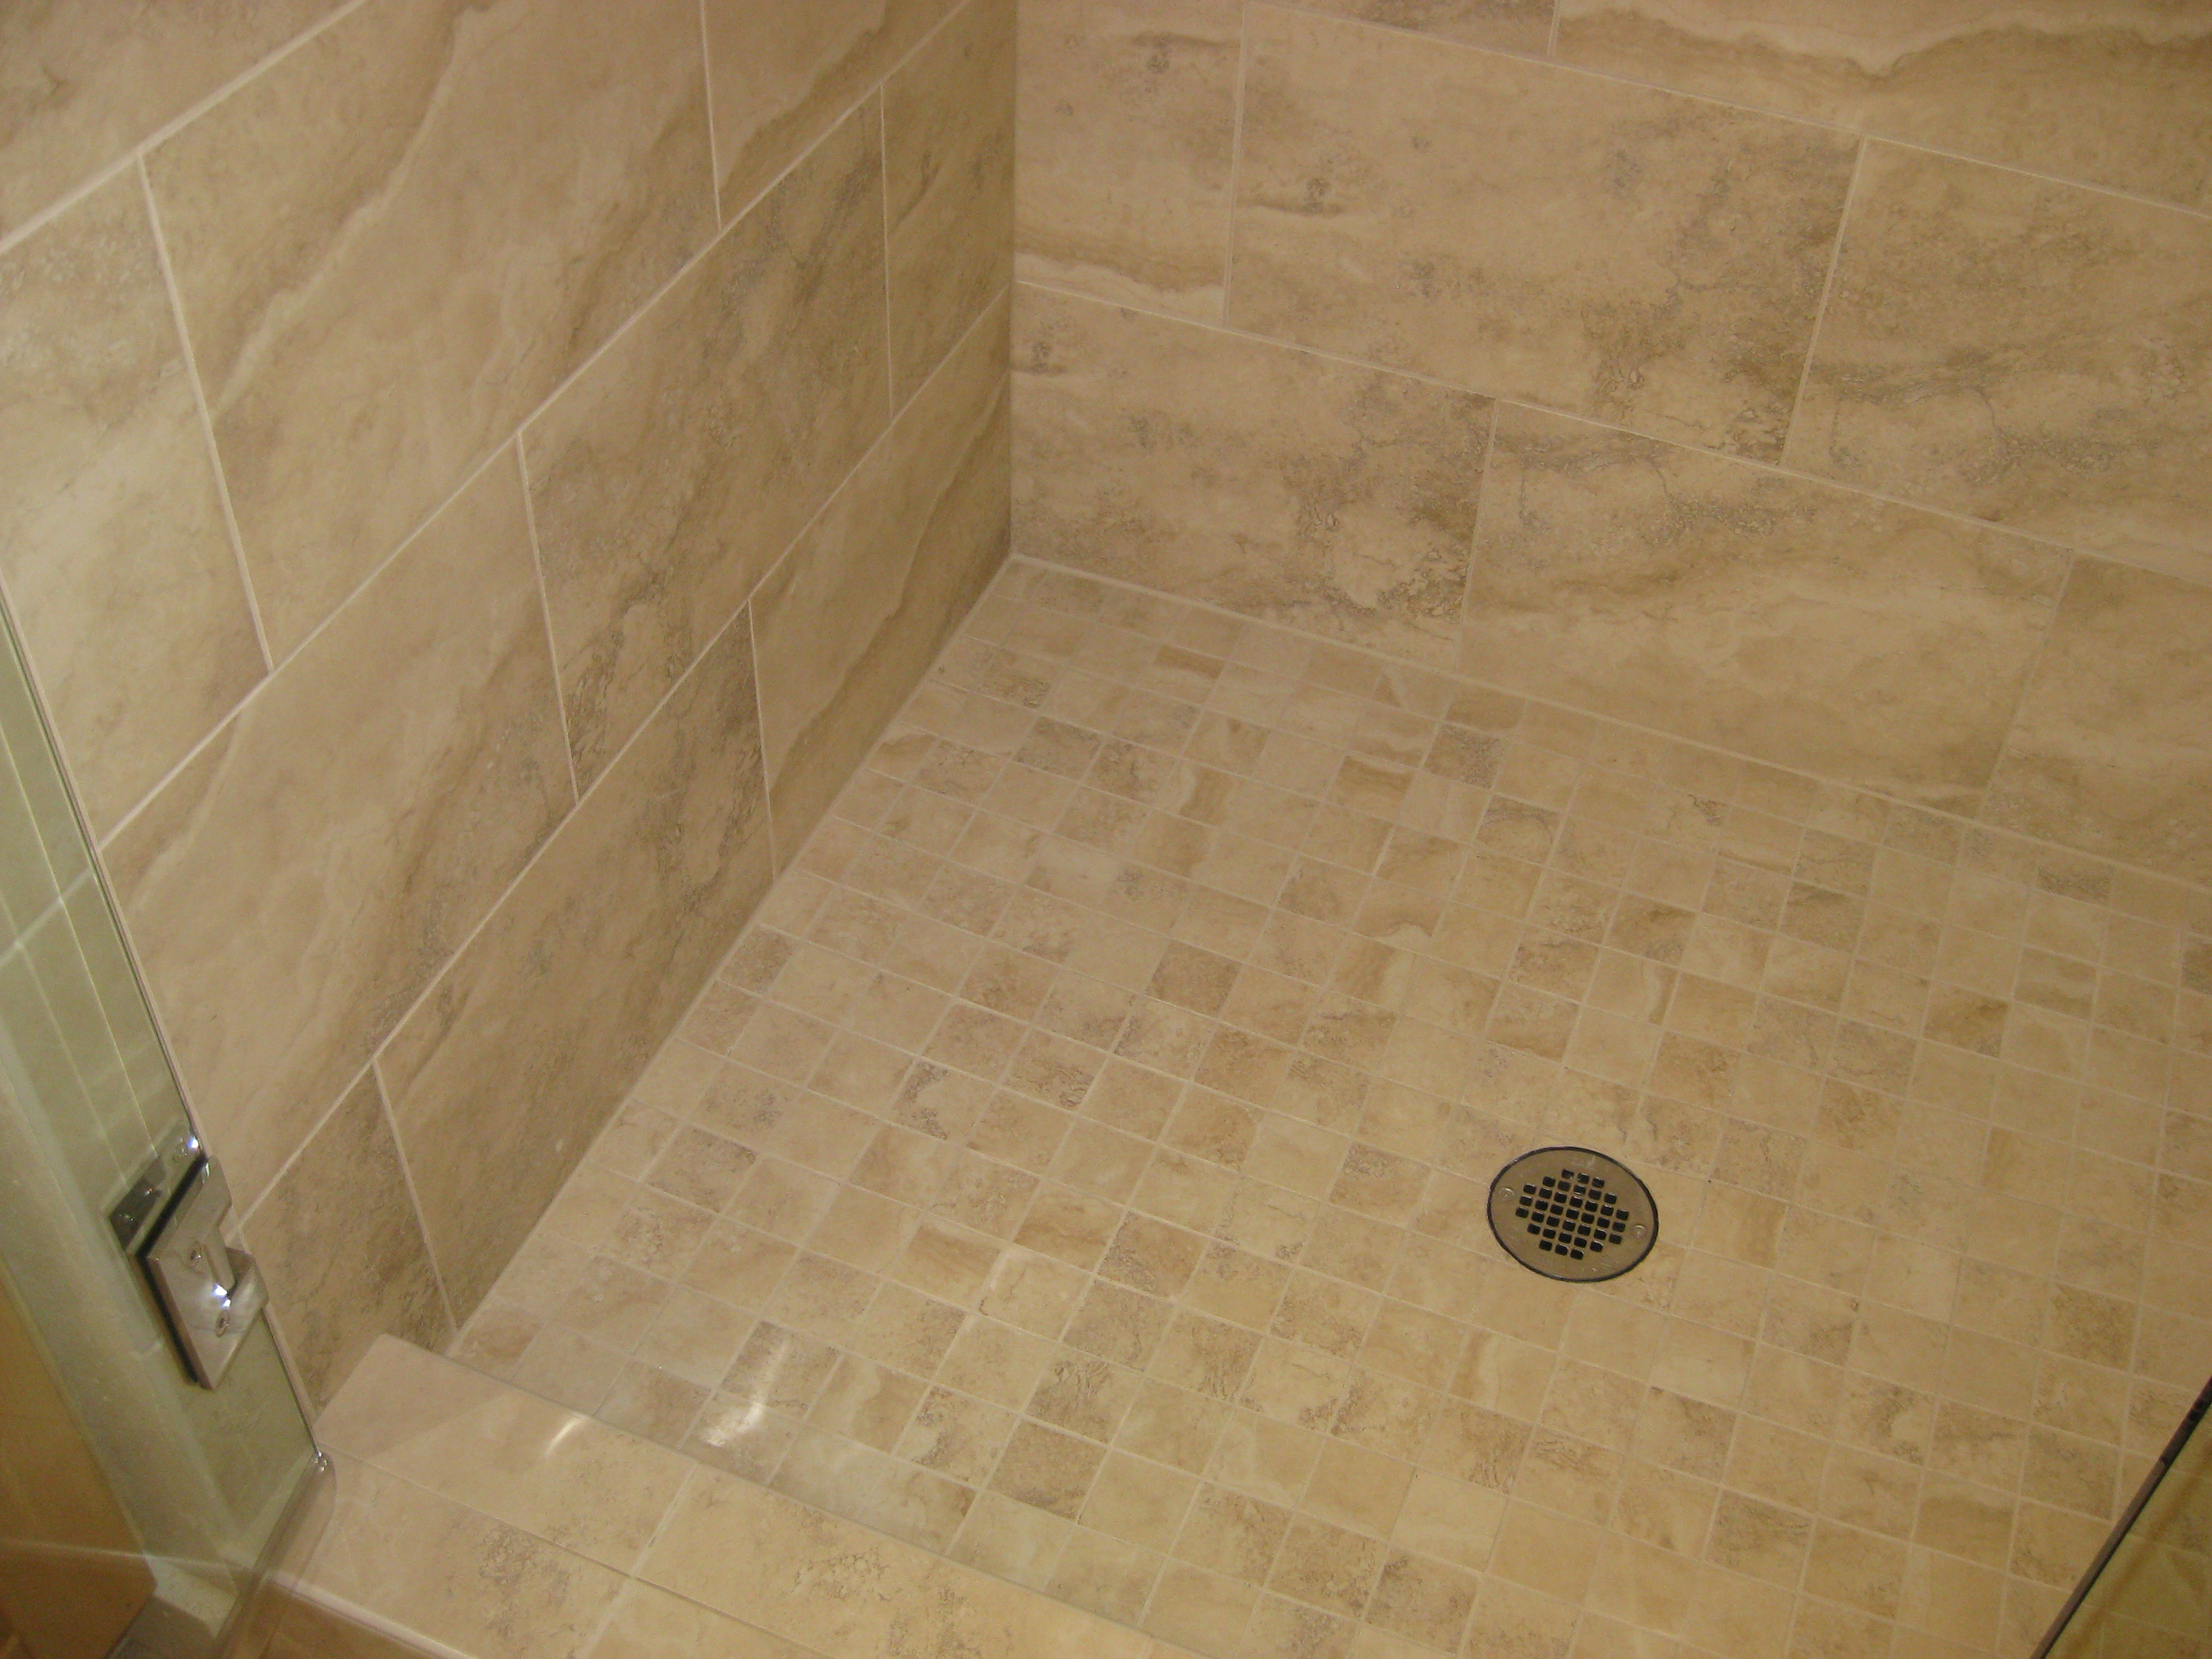 walk-in shower | Alex Freddi Construction, LLC.